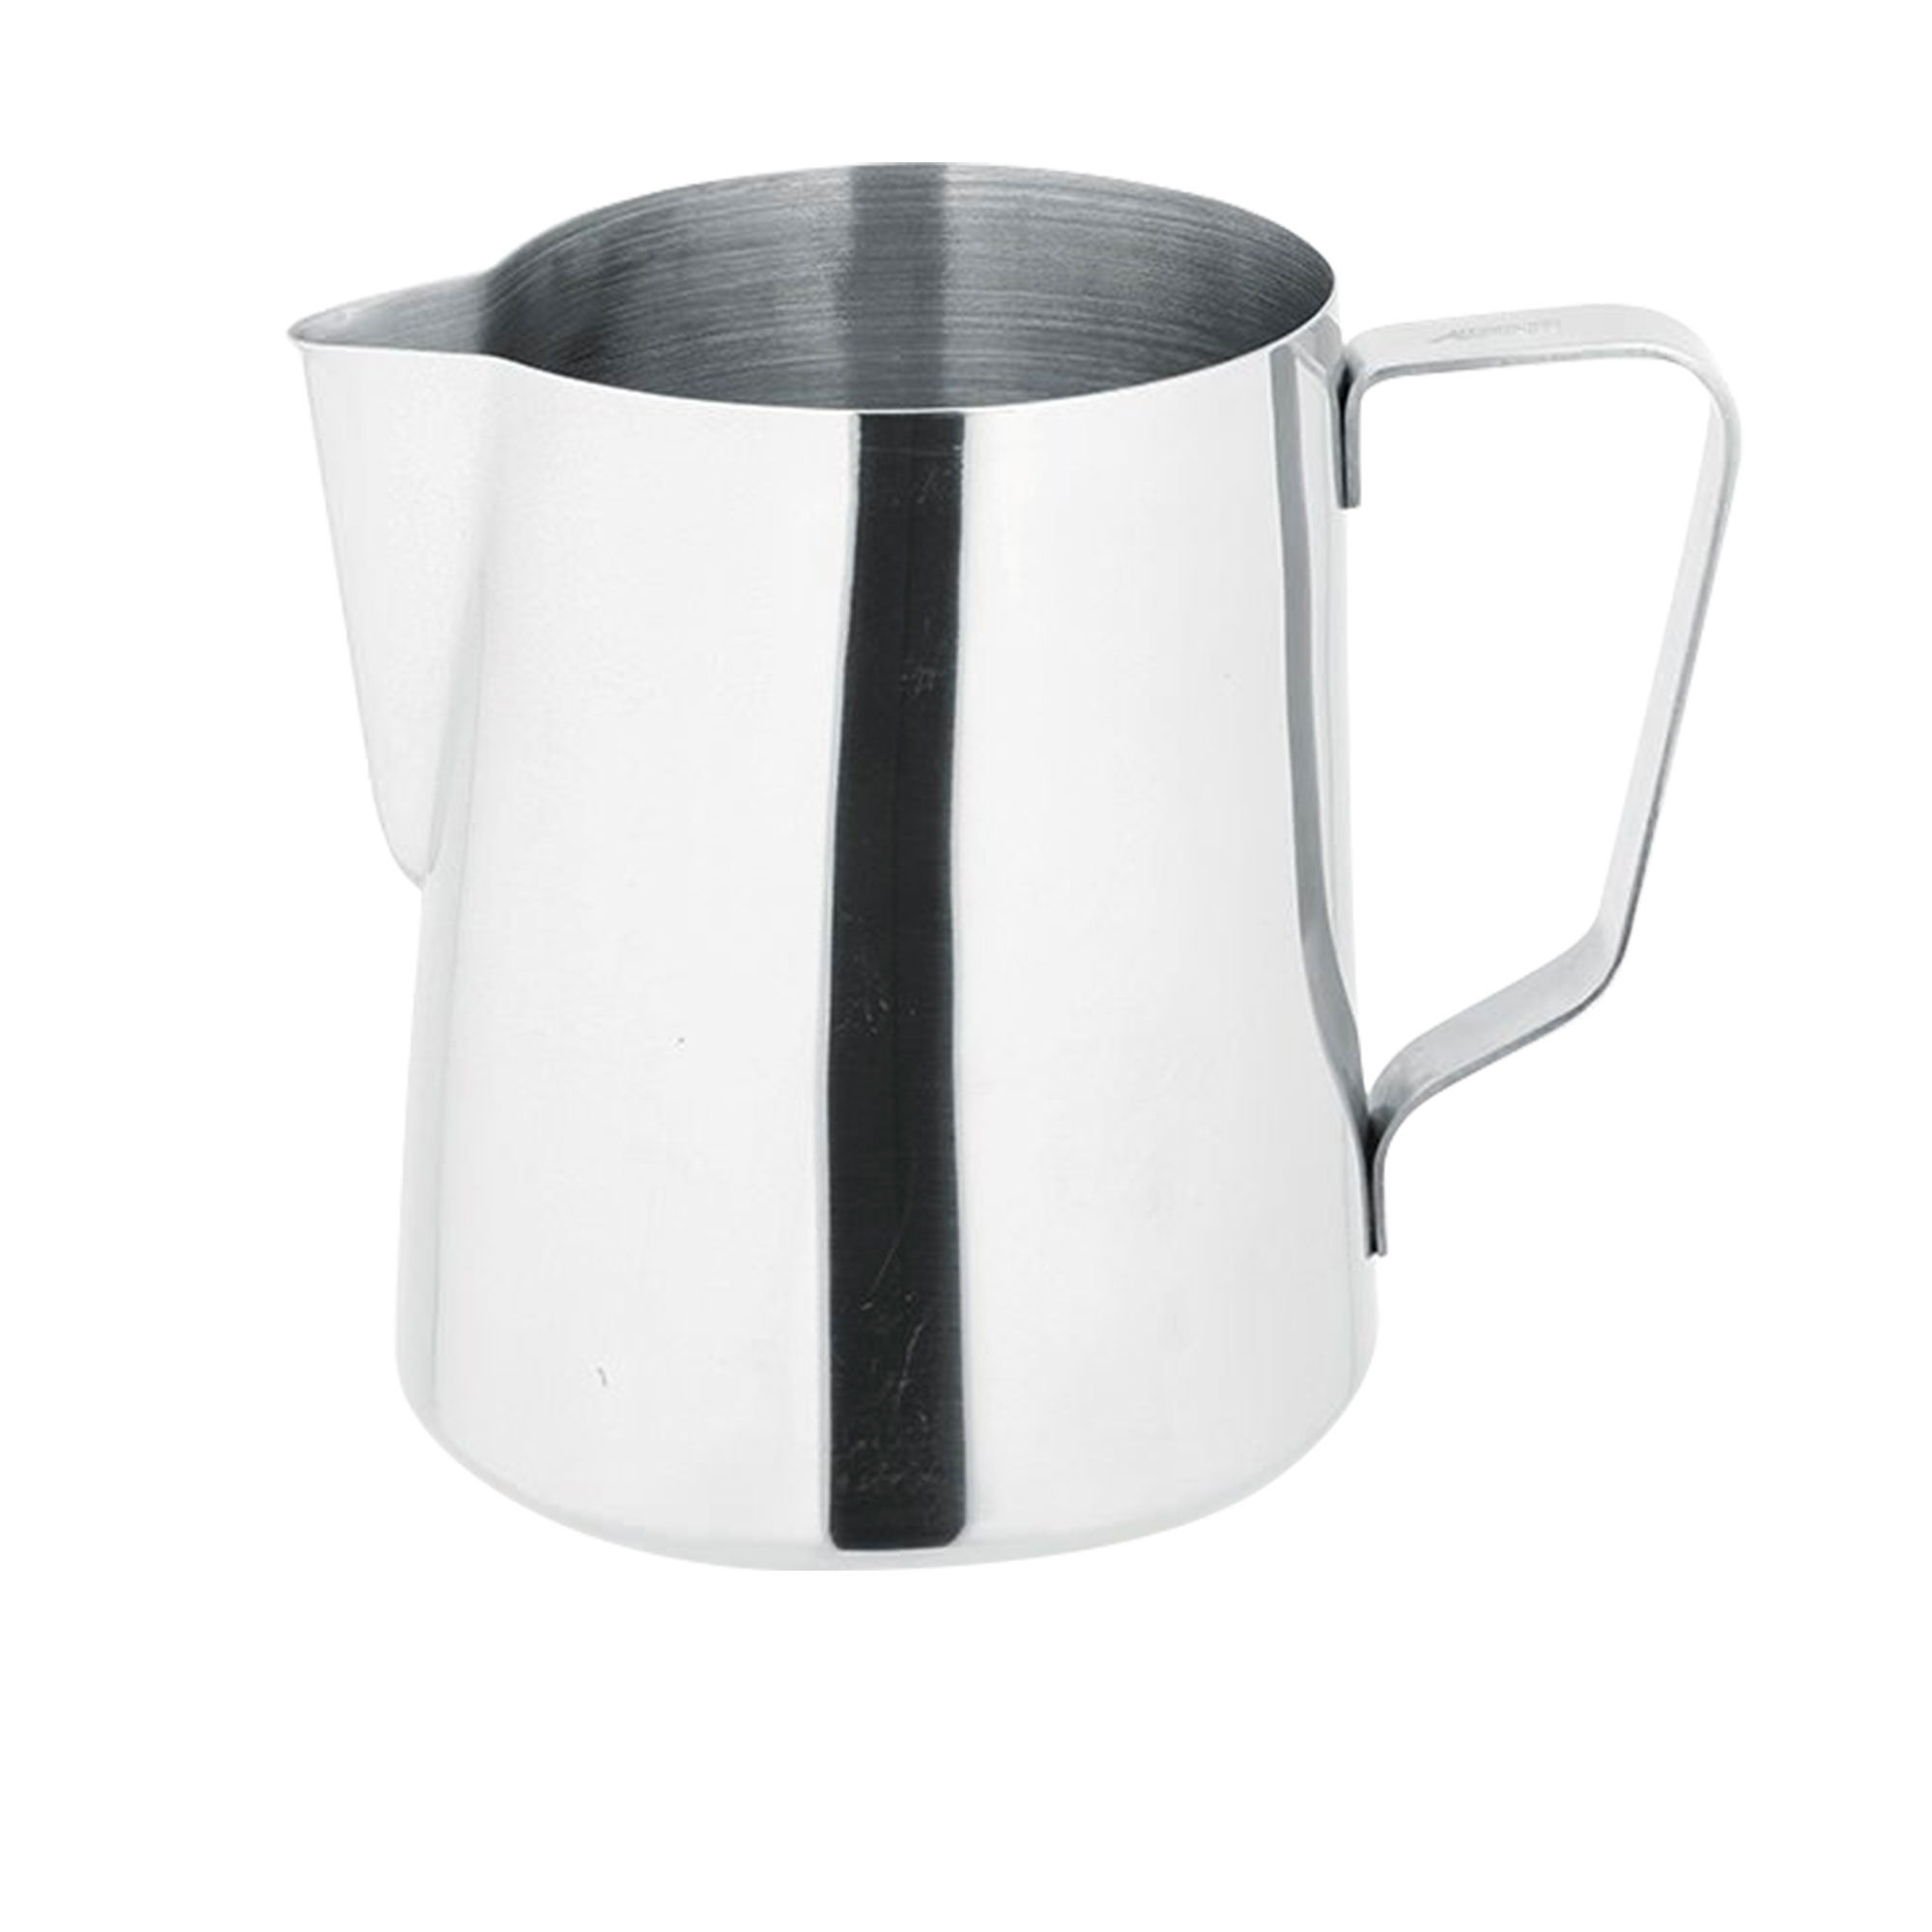 Avanti Milk Frothing Jug 900ml